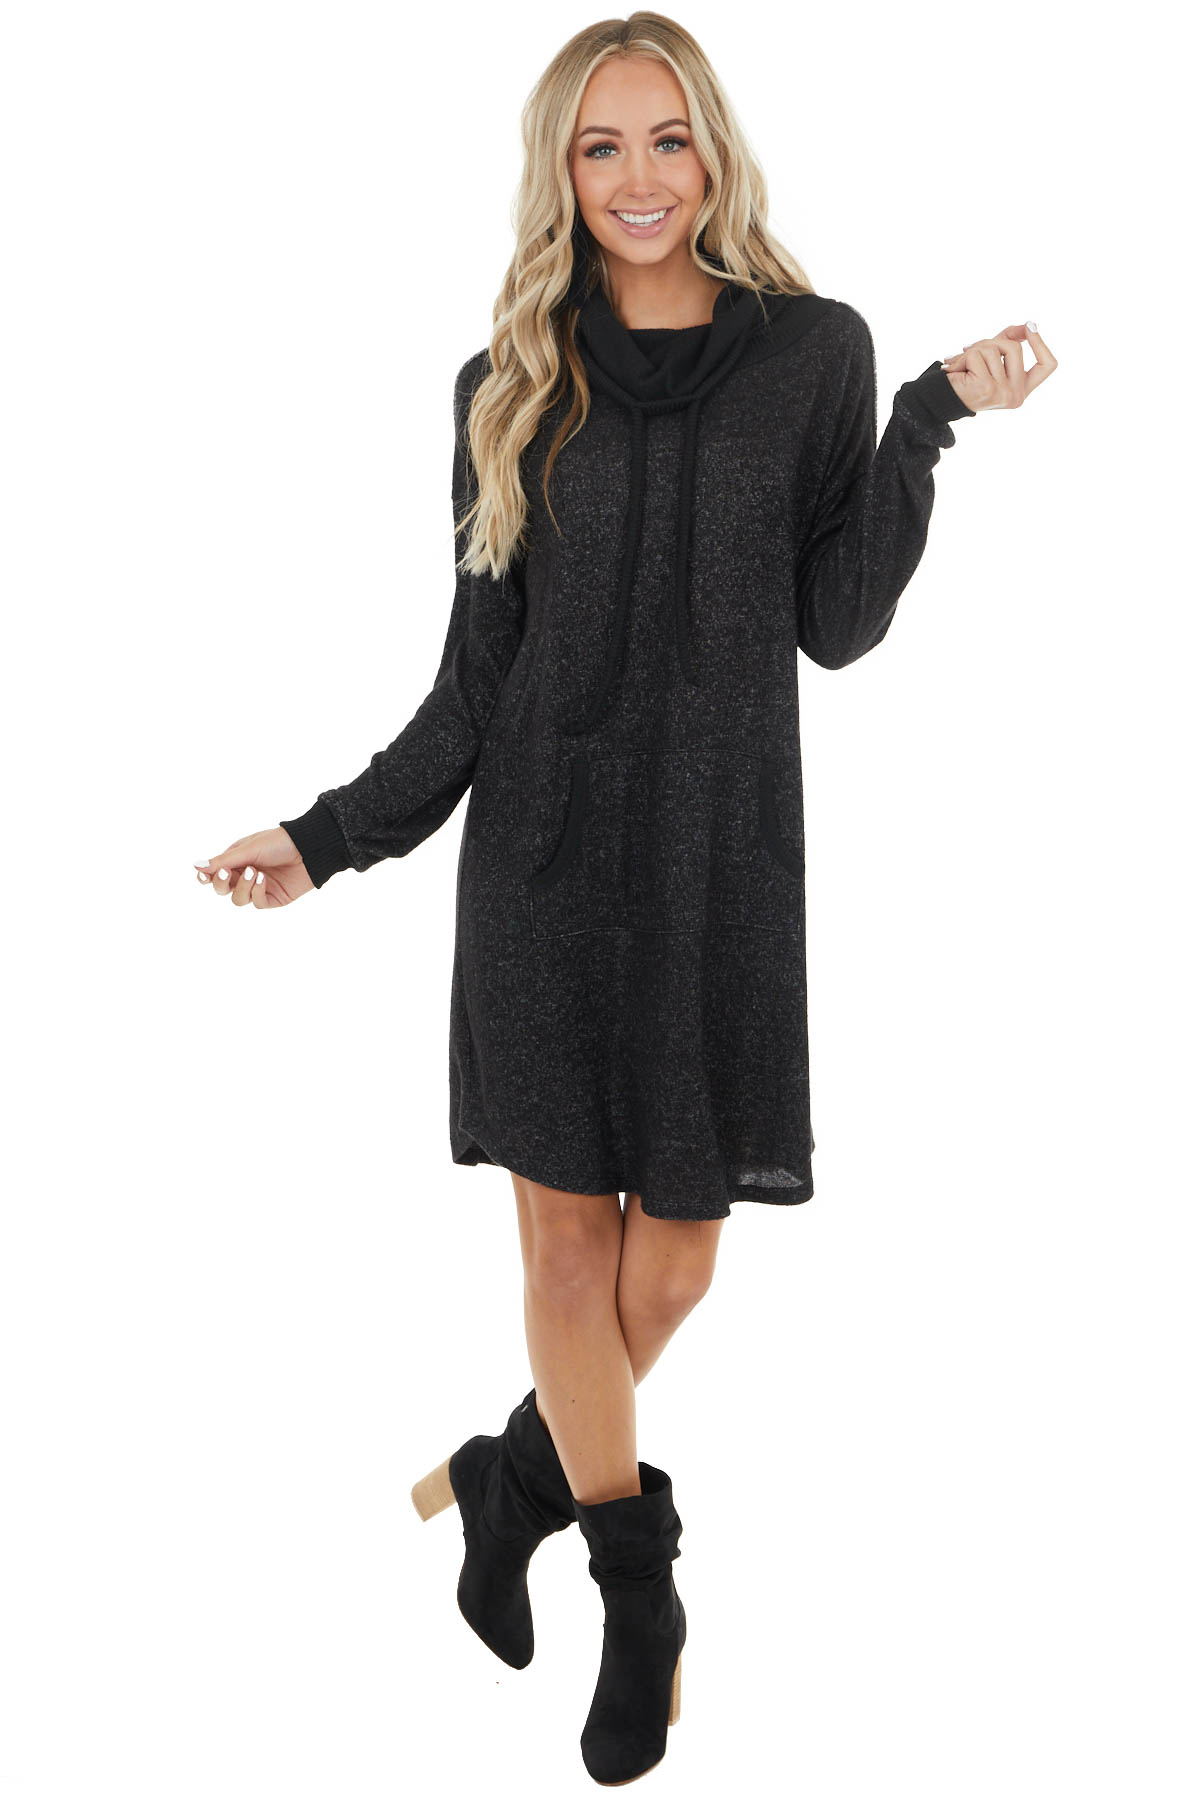 Black Two Tone Lightweight Sweater Dress with Cowl Neck